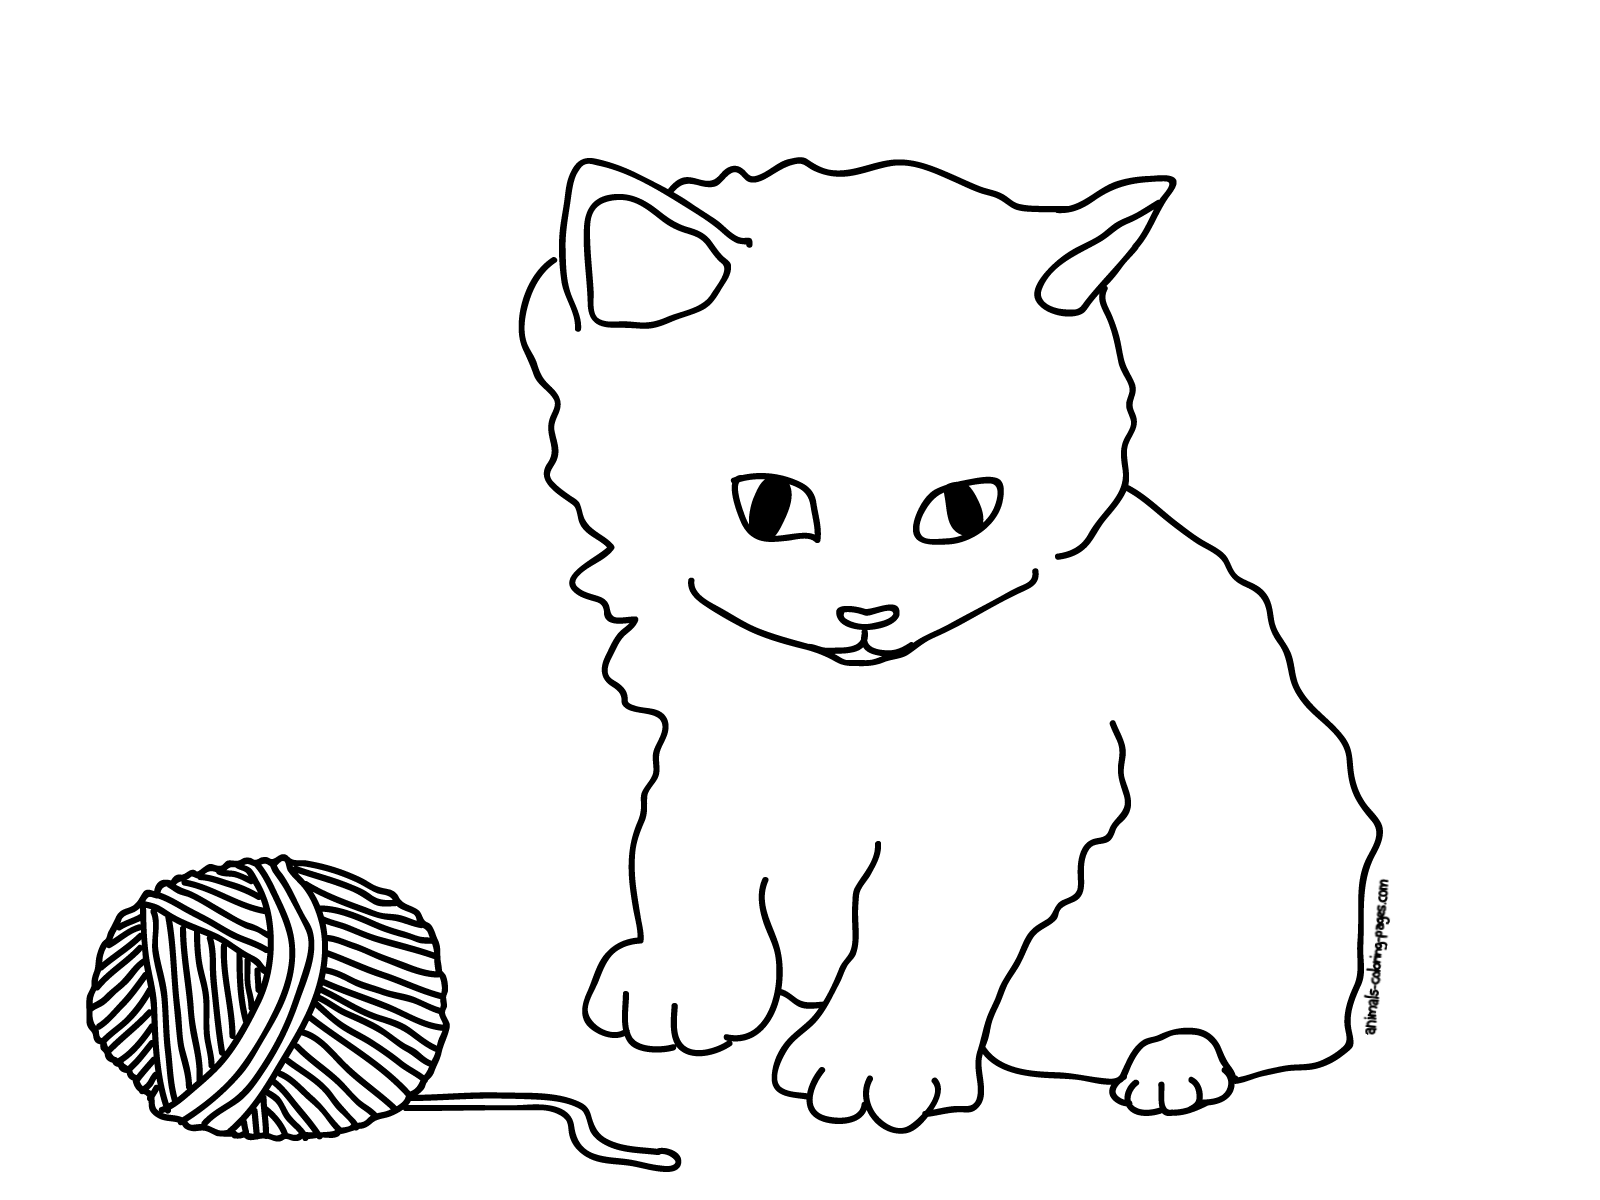 kittens coloring pages to print cute kitten cats adult coloring pages kittens coloring to print pages